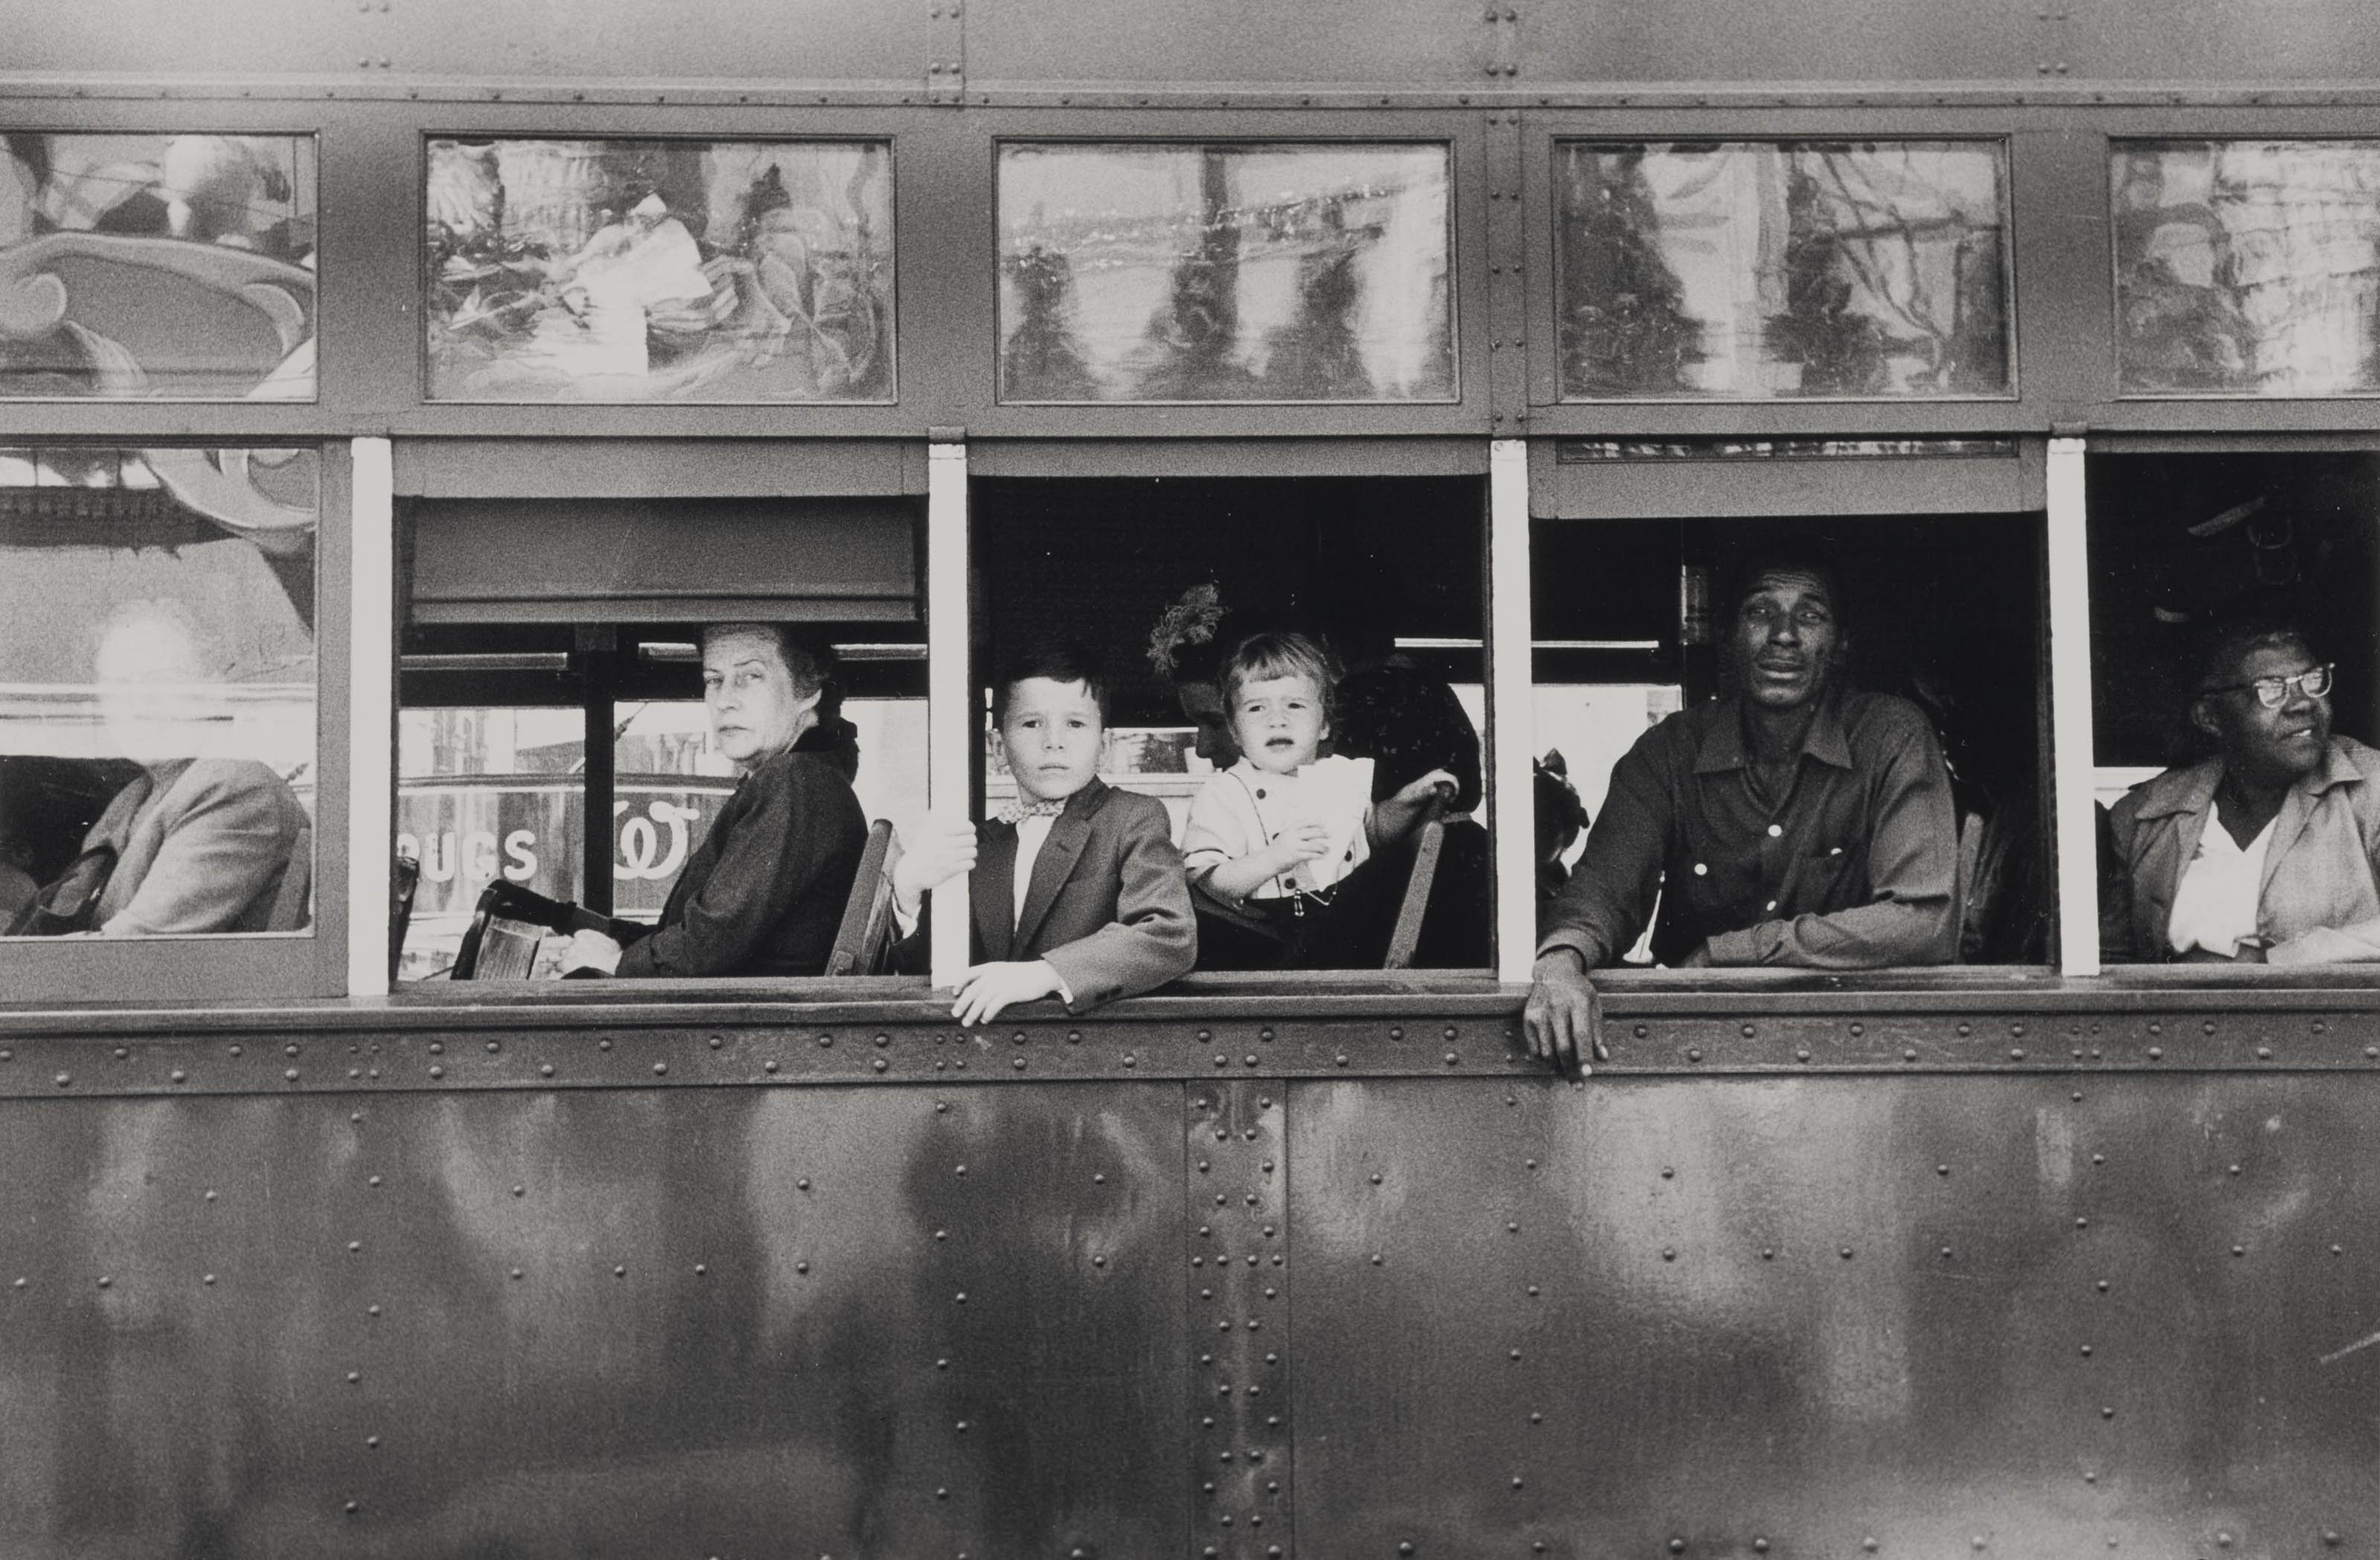 Trolley - New Orleans, 1955